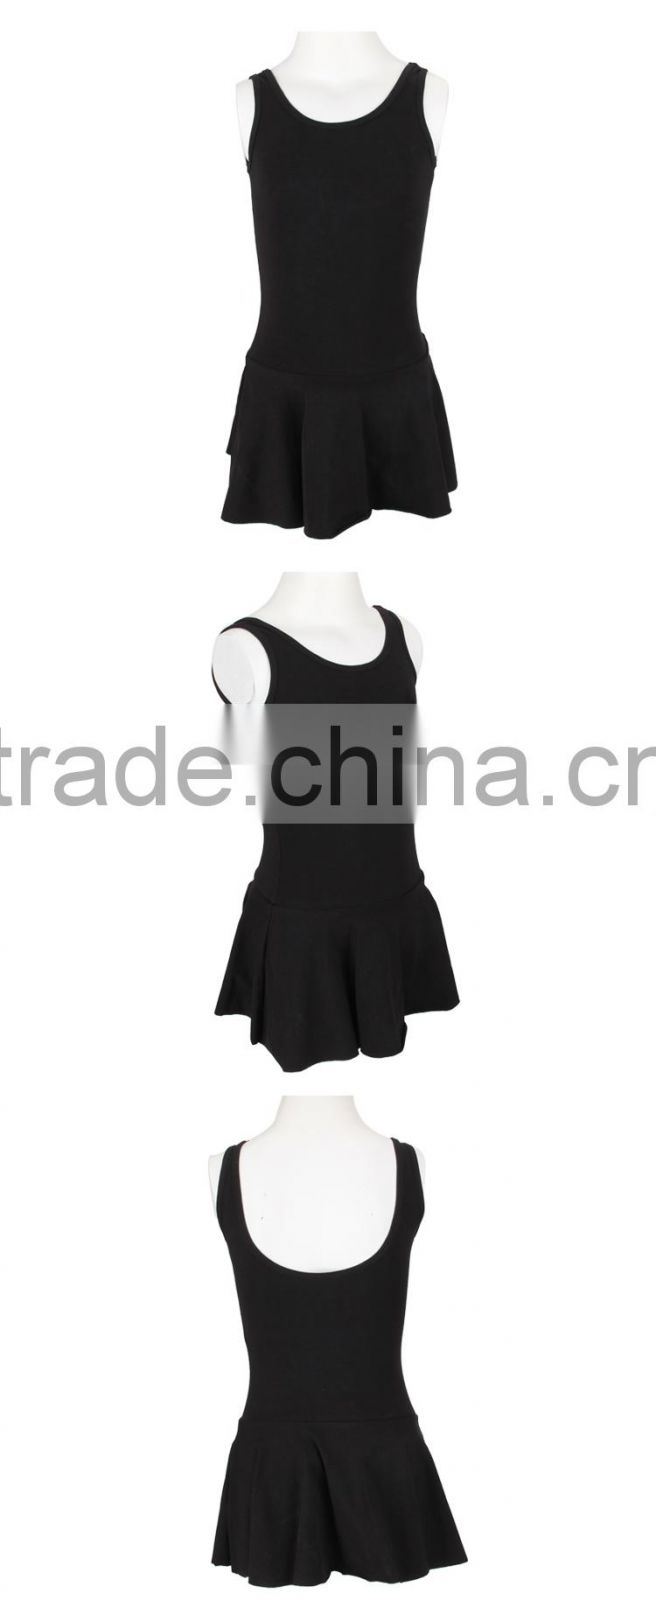 High Quality Wholesale Black Backless Vest Kid Child Dress for Little Girls